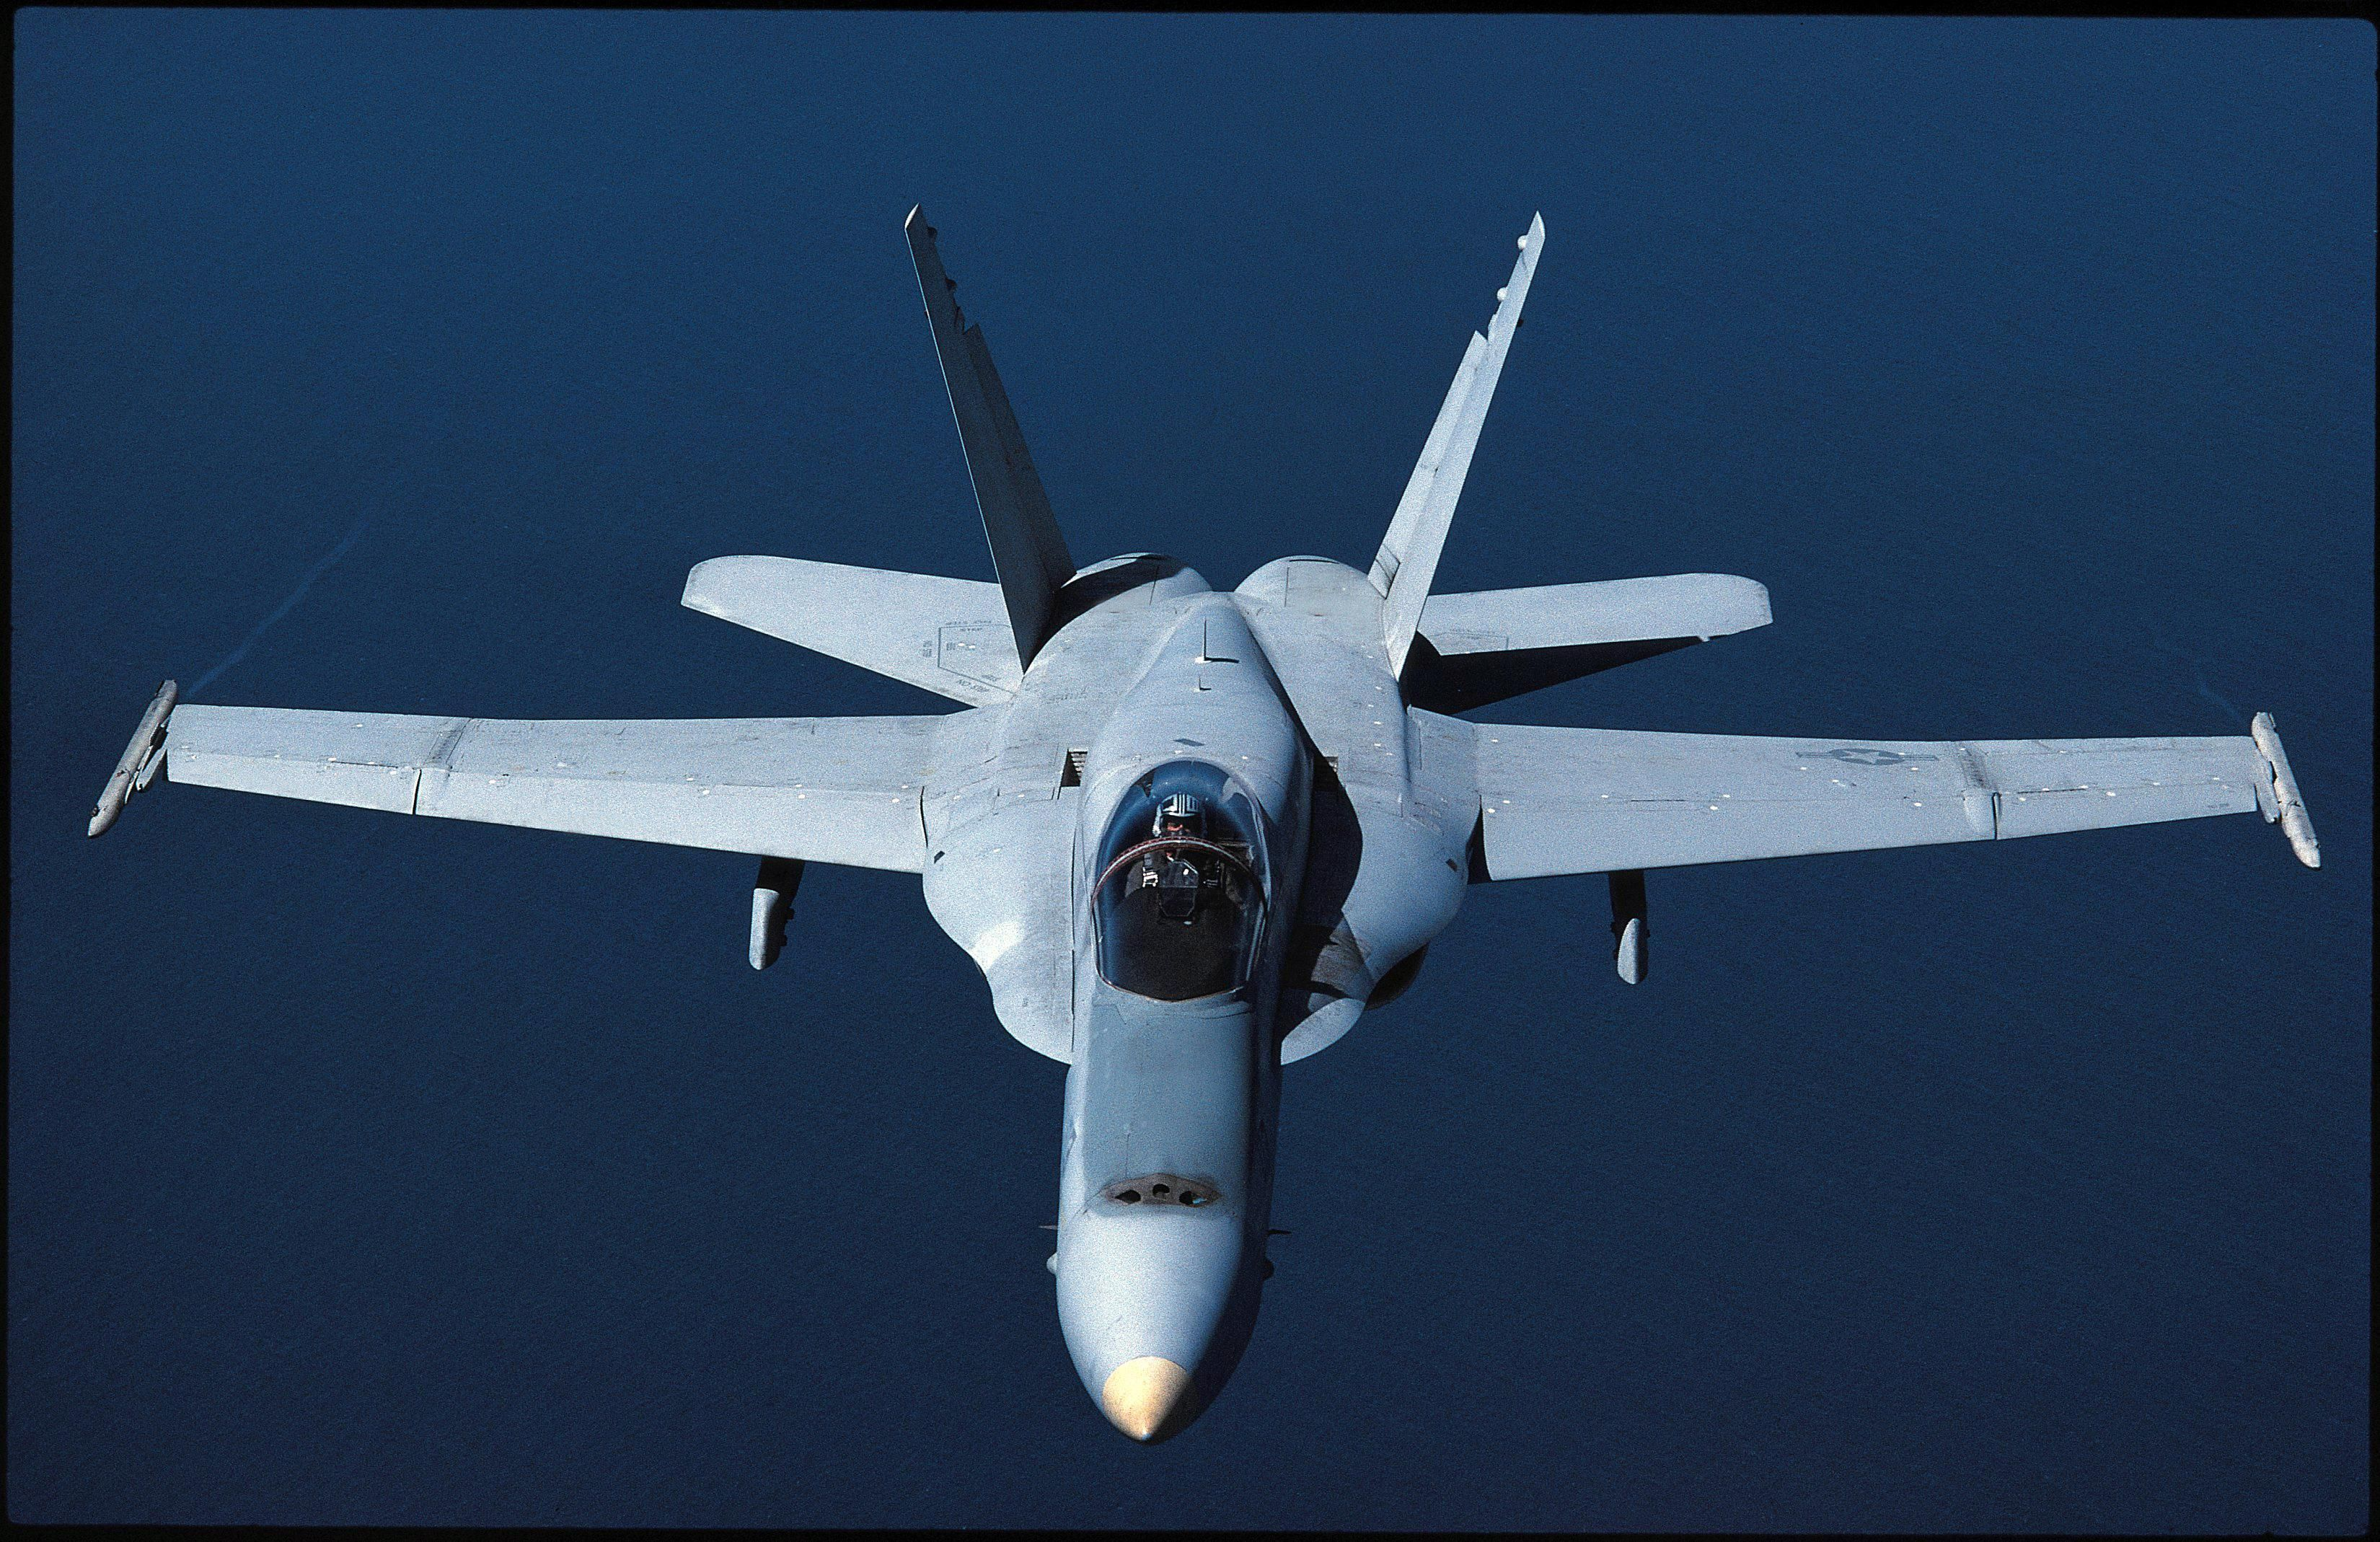 The F/A-18 Hornet has a top speed of Mach 1.8. When traveling at ...